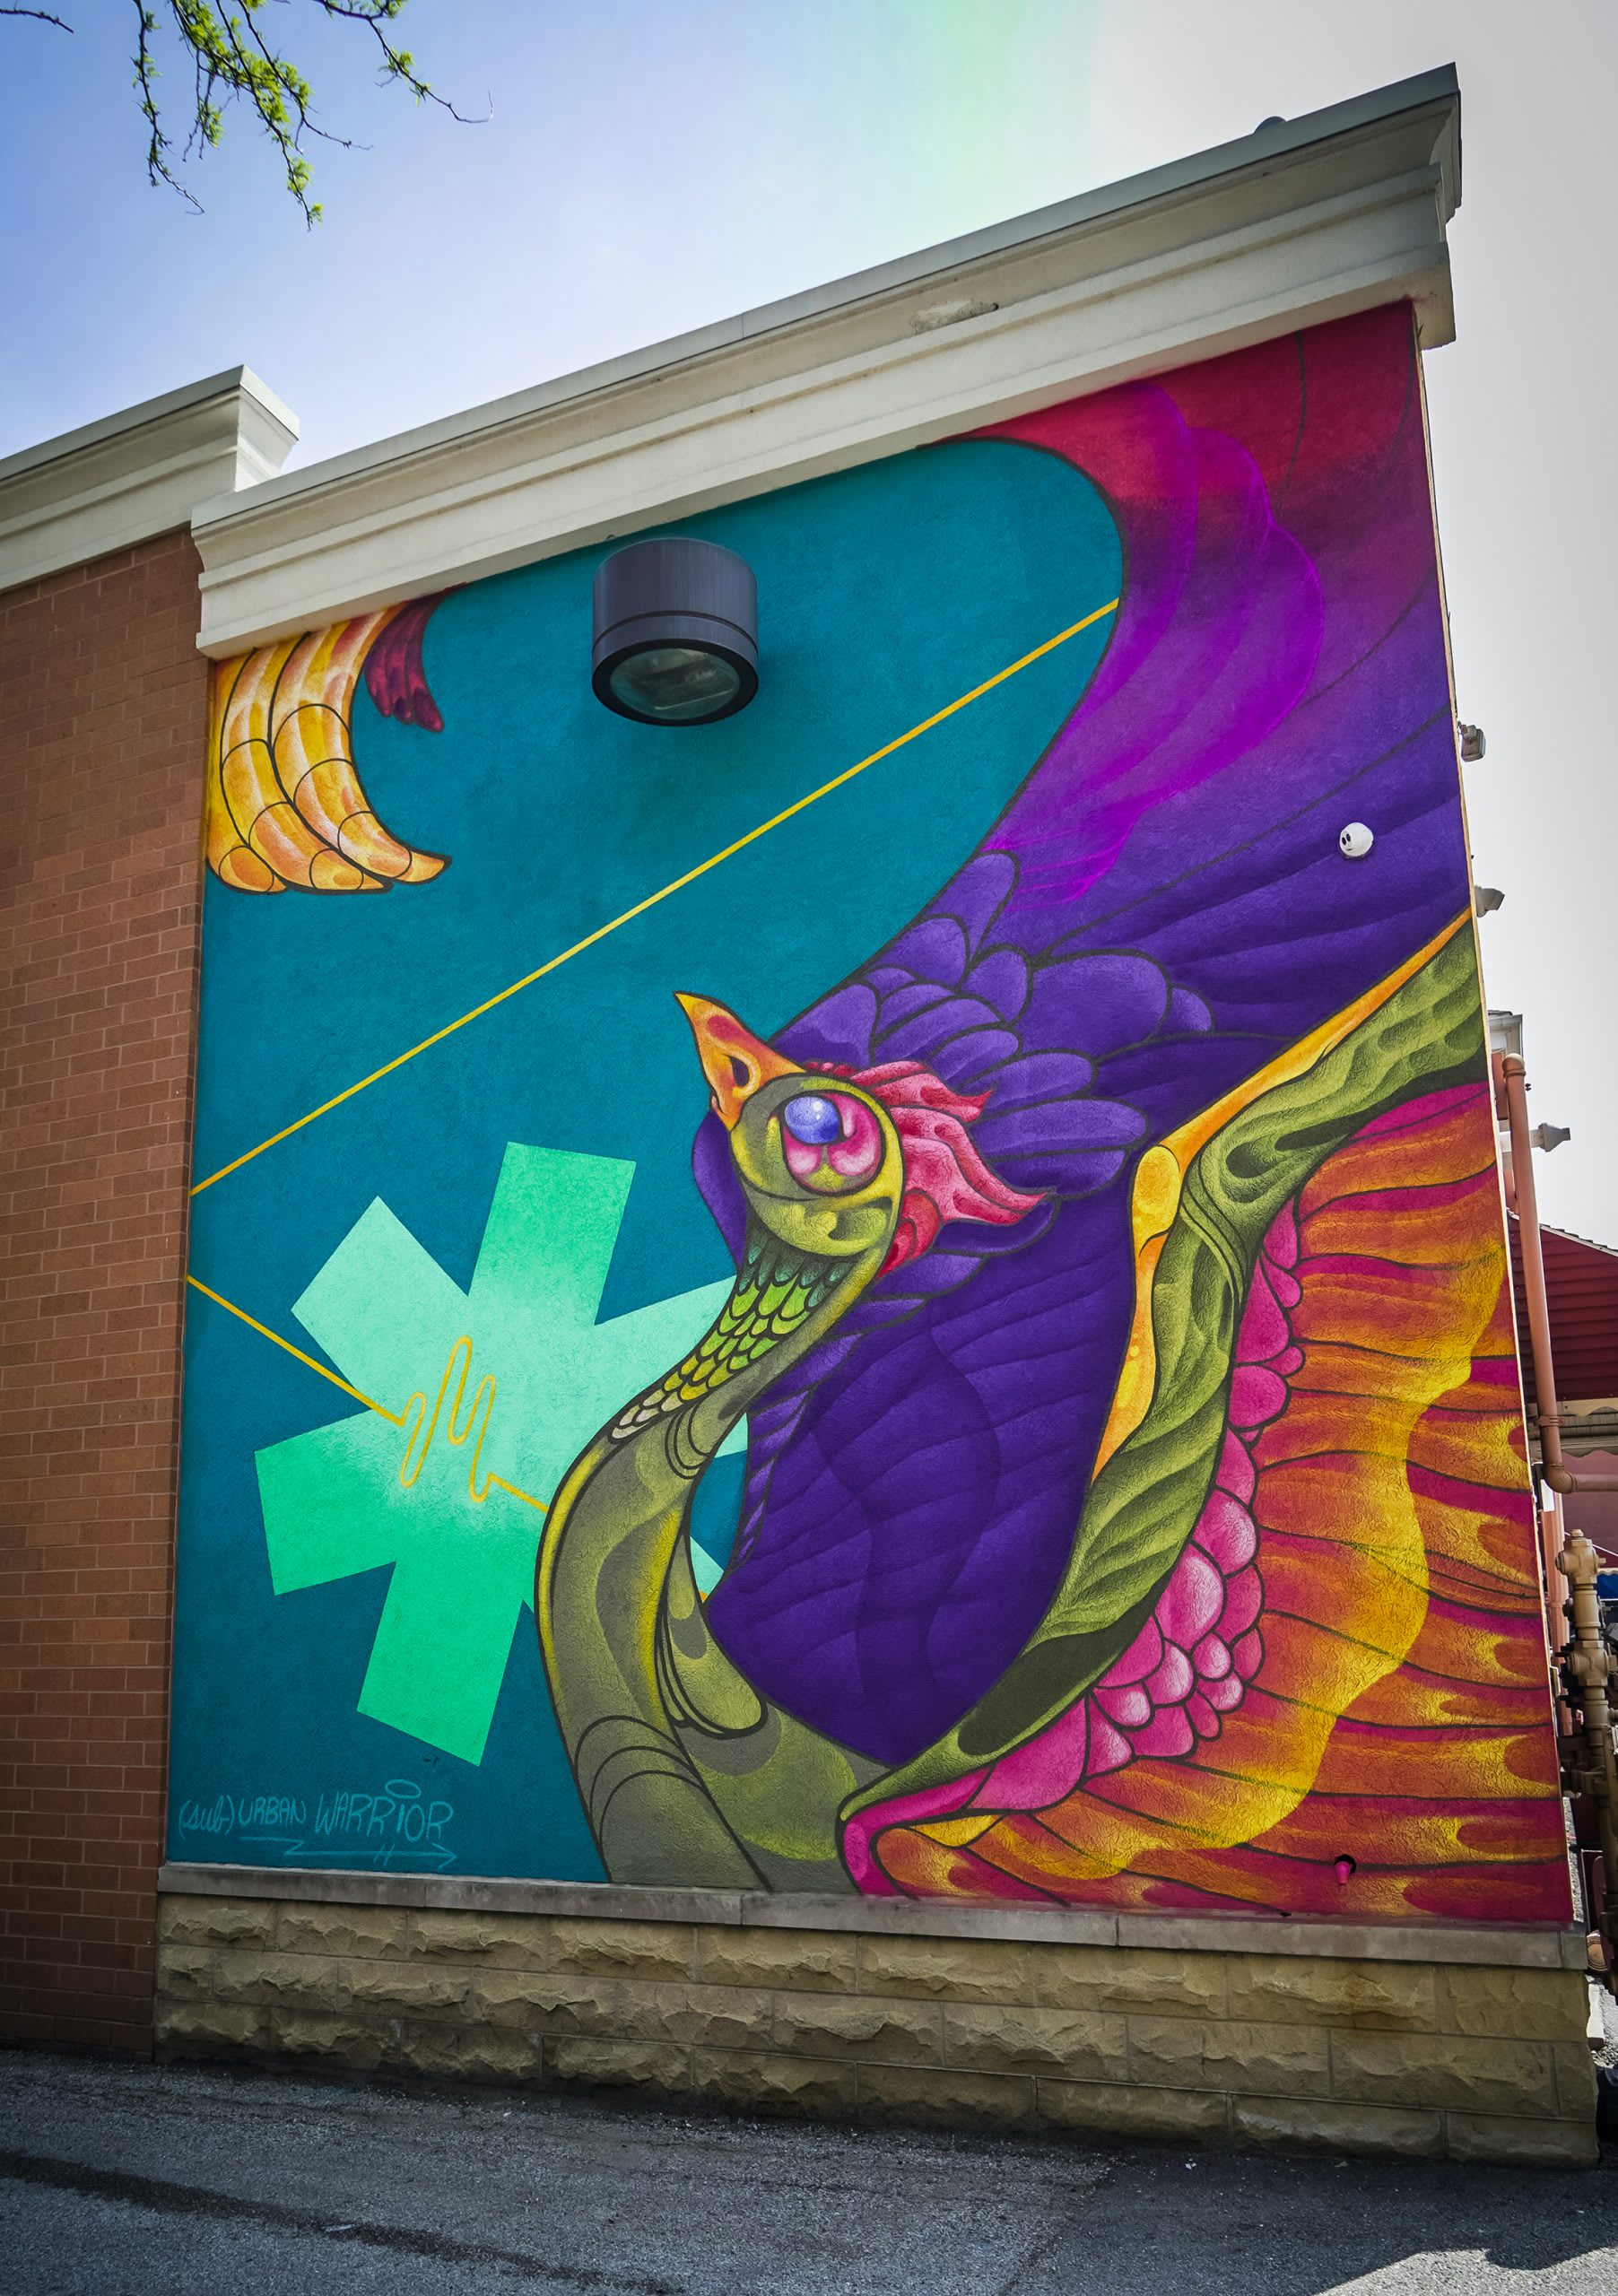 Murals For Medical Relief Mural in Chicago by Suburban Warrior